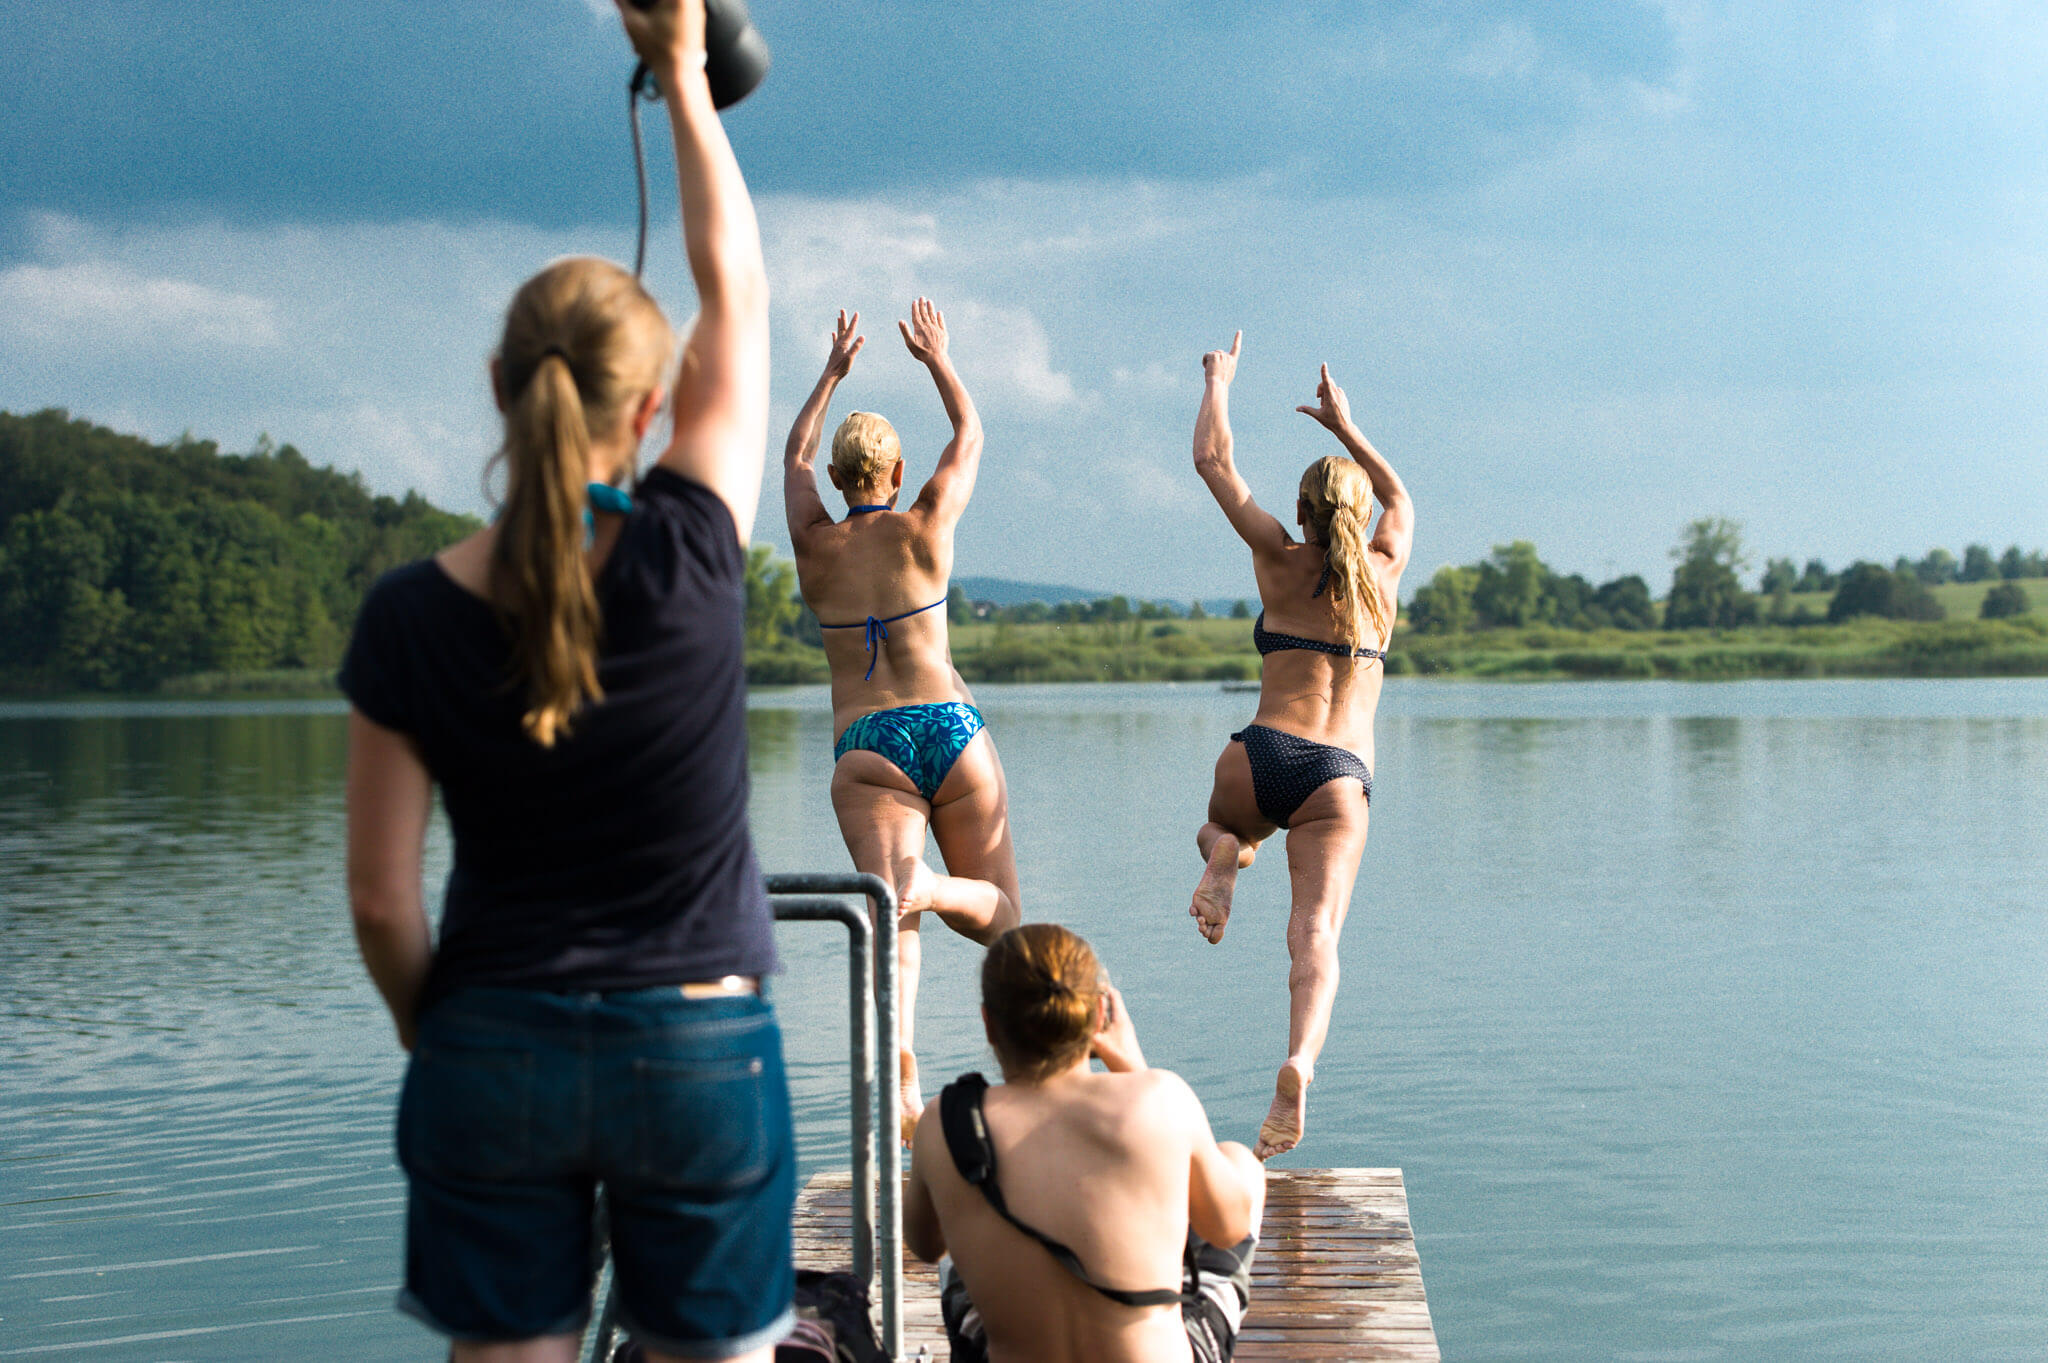 Fotoshooting on Location am See